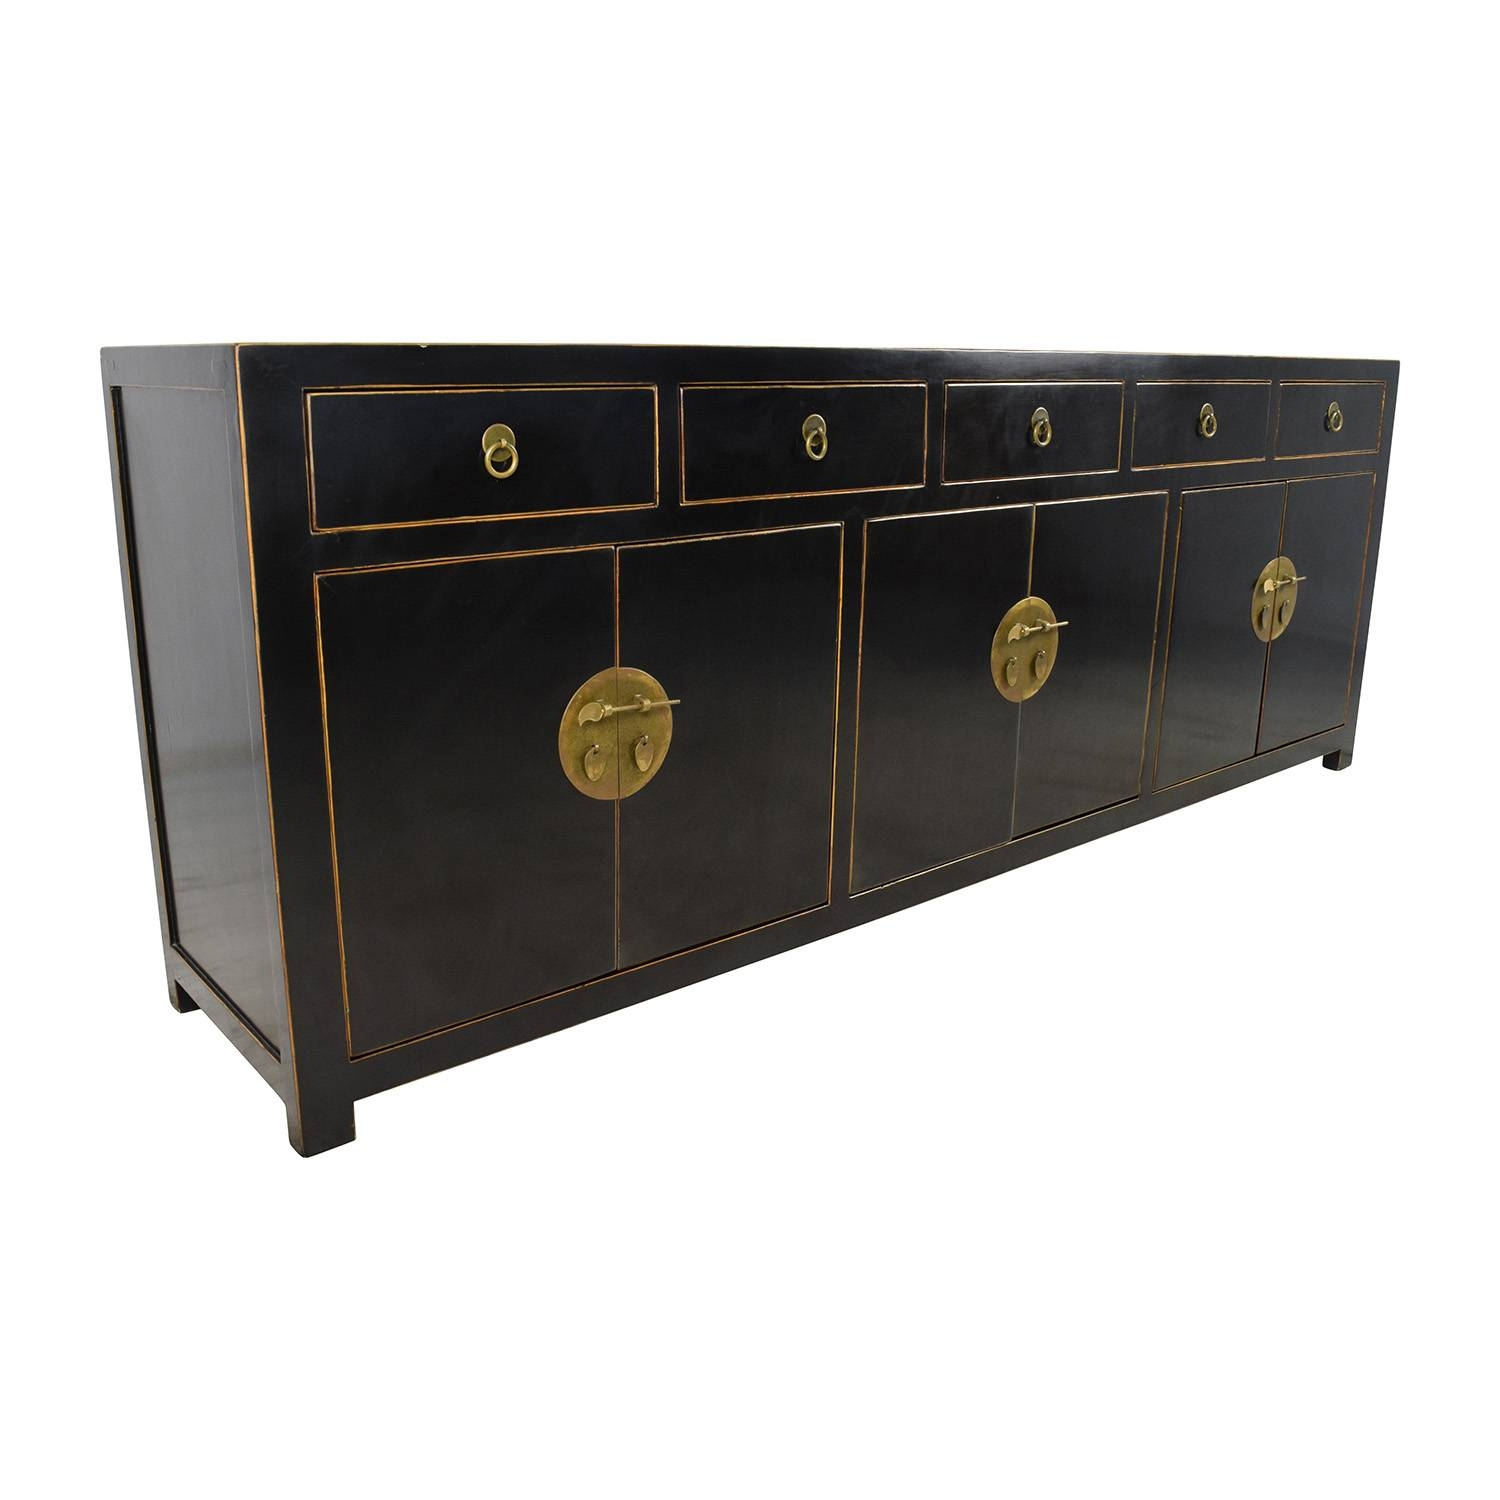 85% Off - Custom Made Black Drawer And Cabinet Sideboard / Storage throughout Ready Made Sideboards (Image 6 of 30)